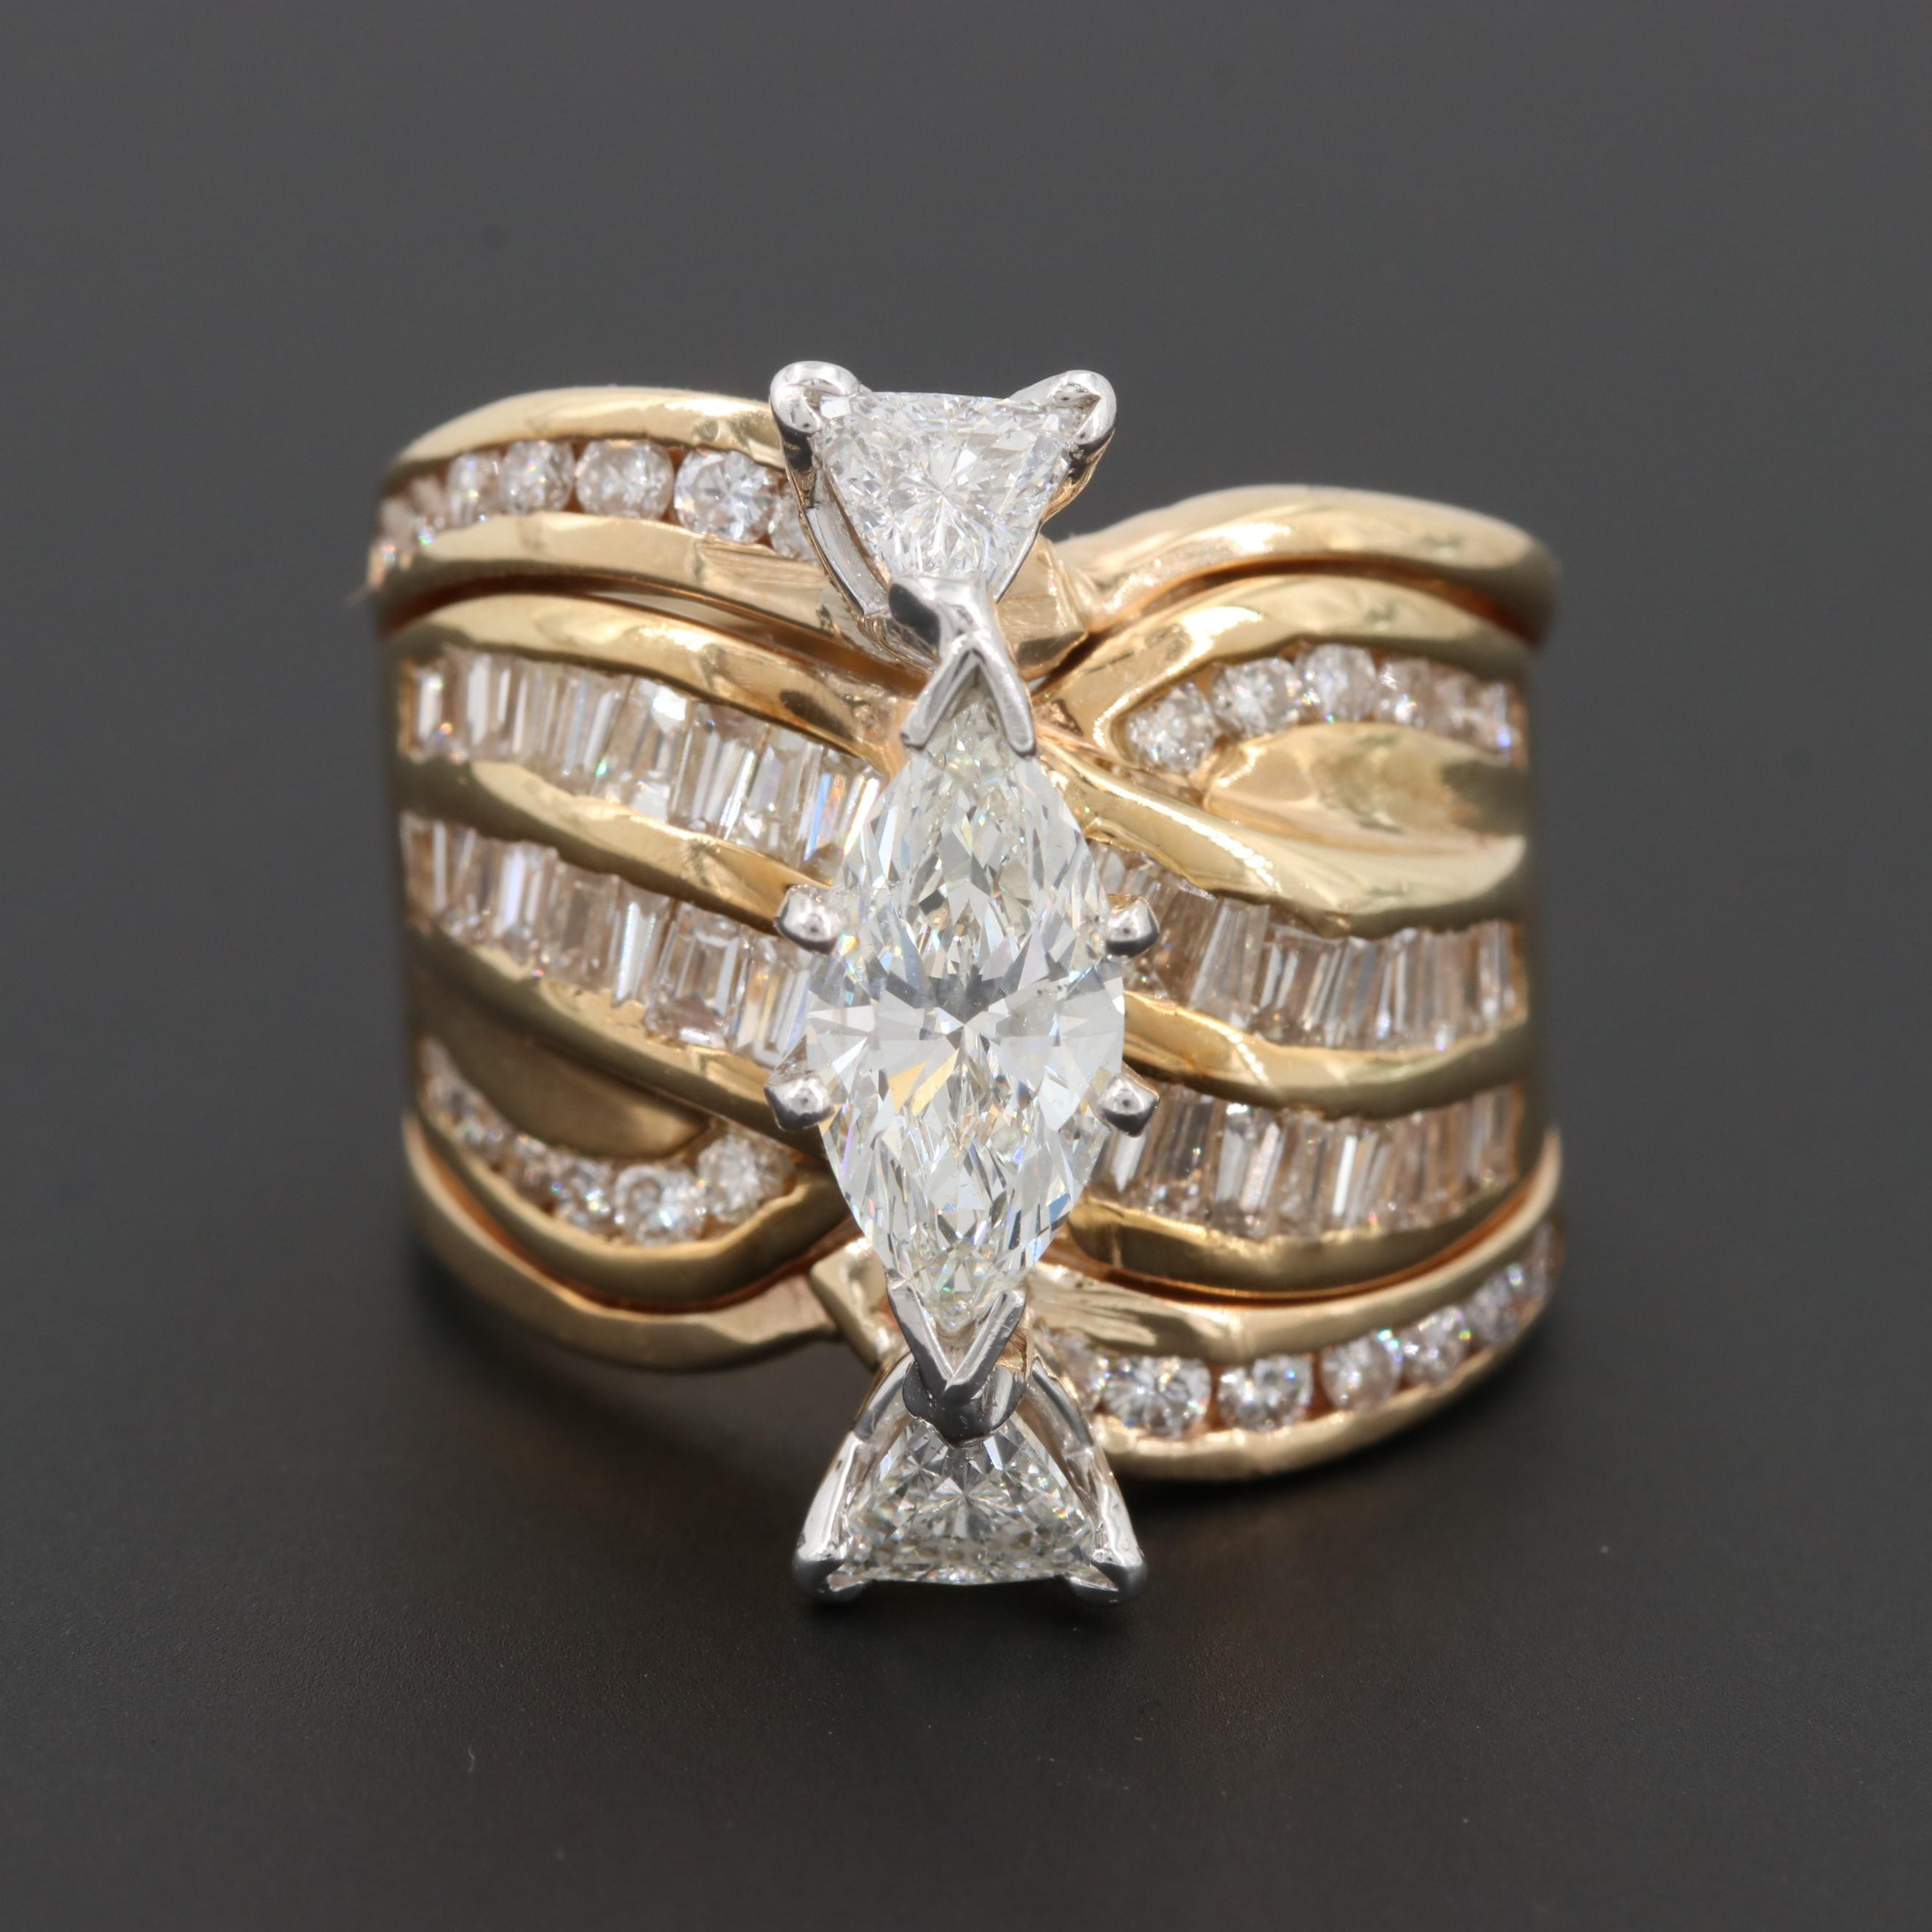 14K Yellow Gold 3.01 CTW Diamond Ring